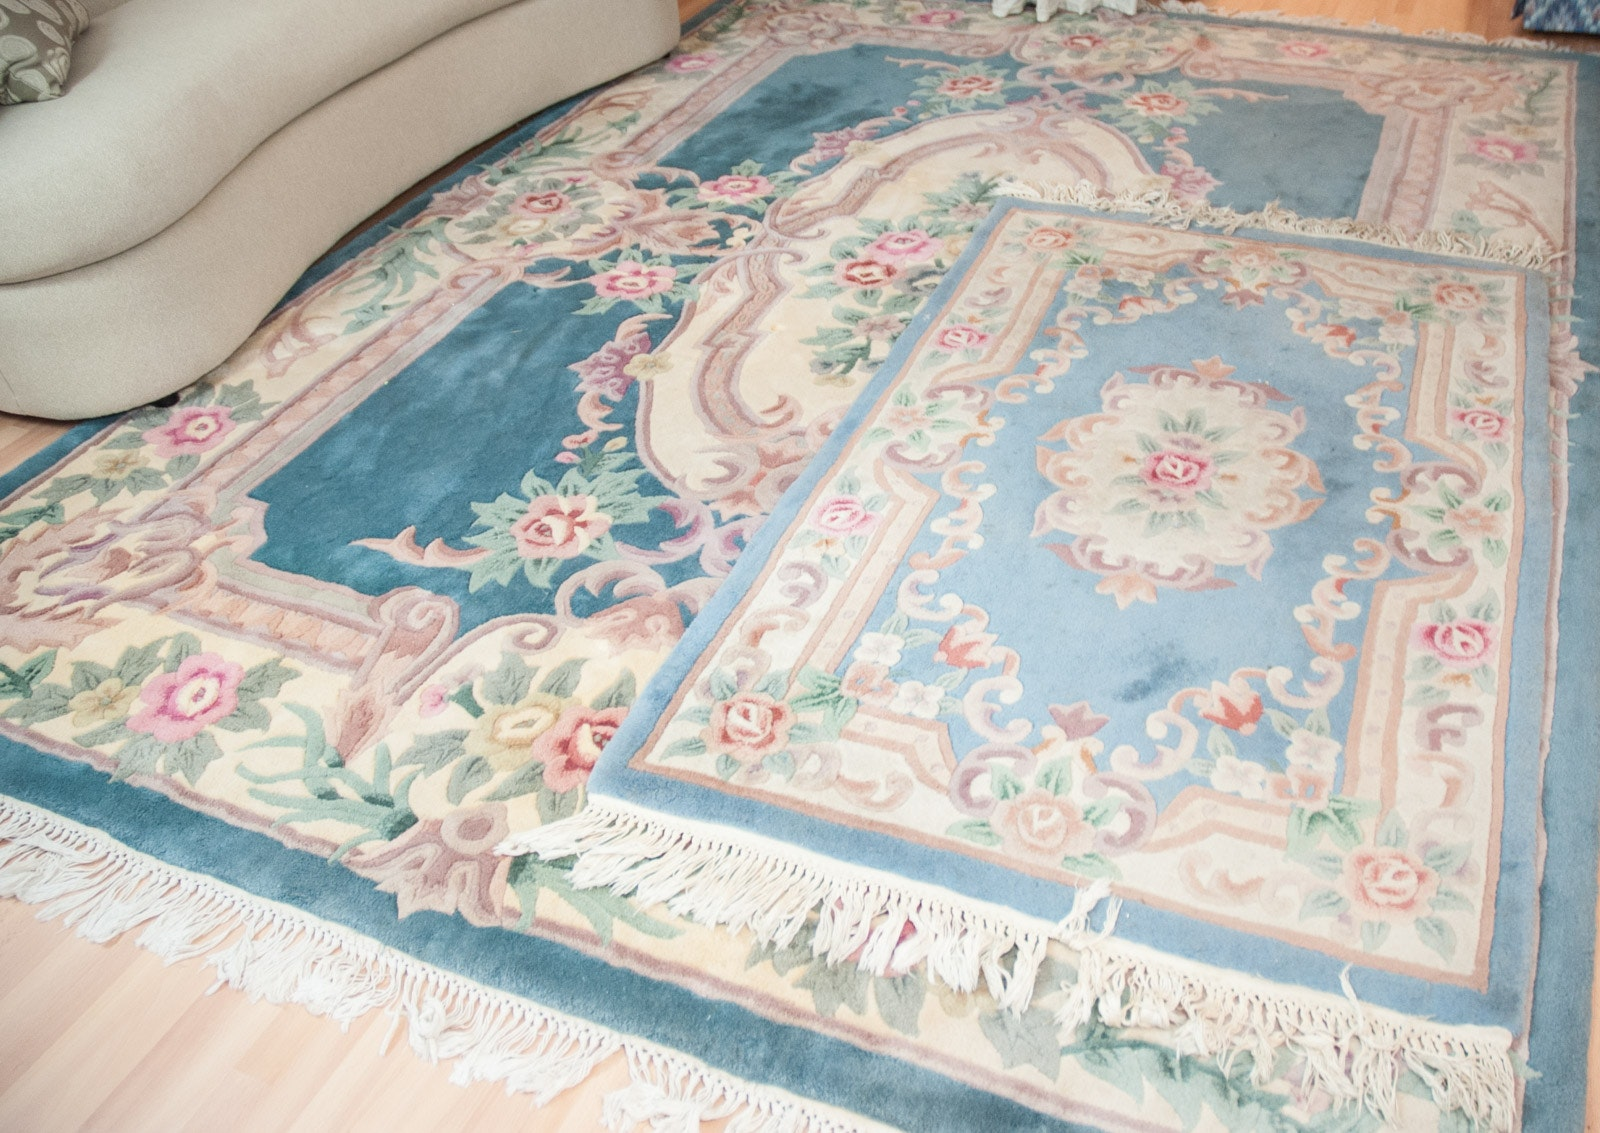 Tufted and Carved Chinese Wool Pile Savonnerie-Style Area Rugs